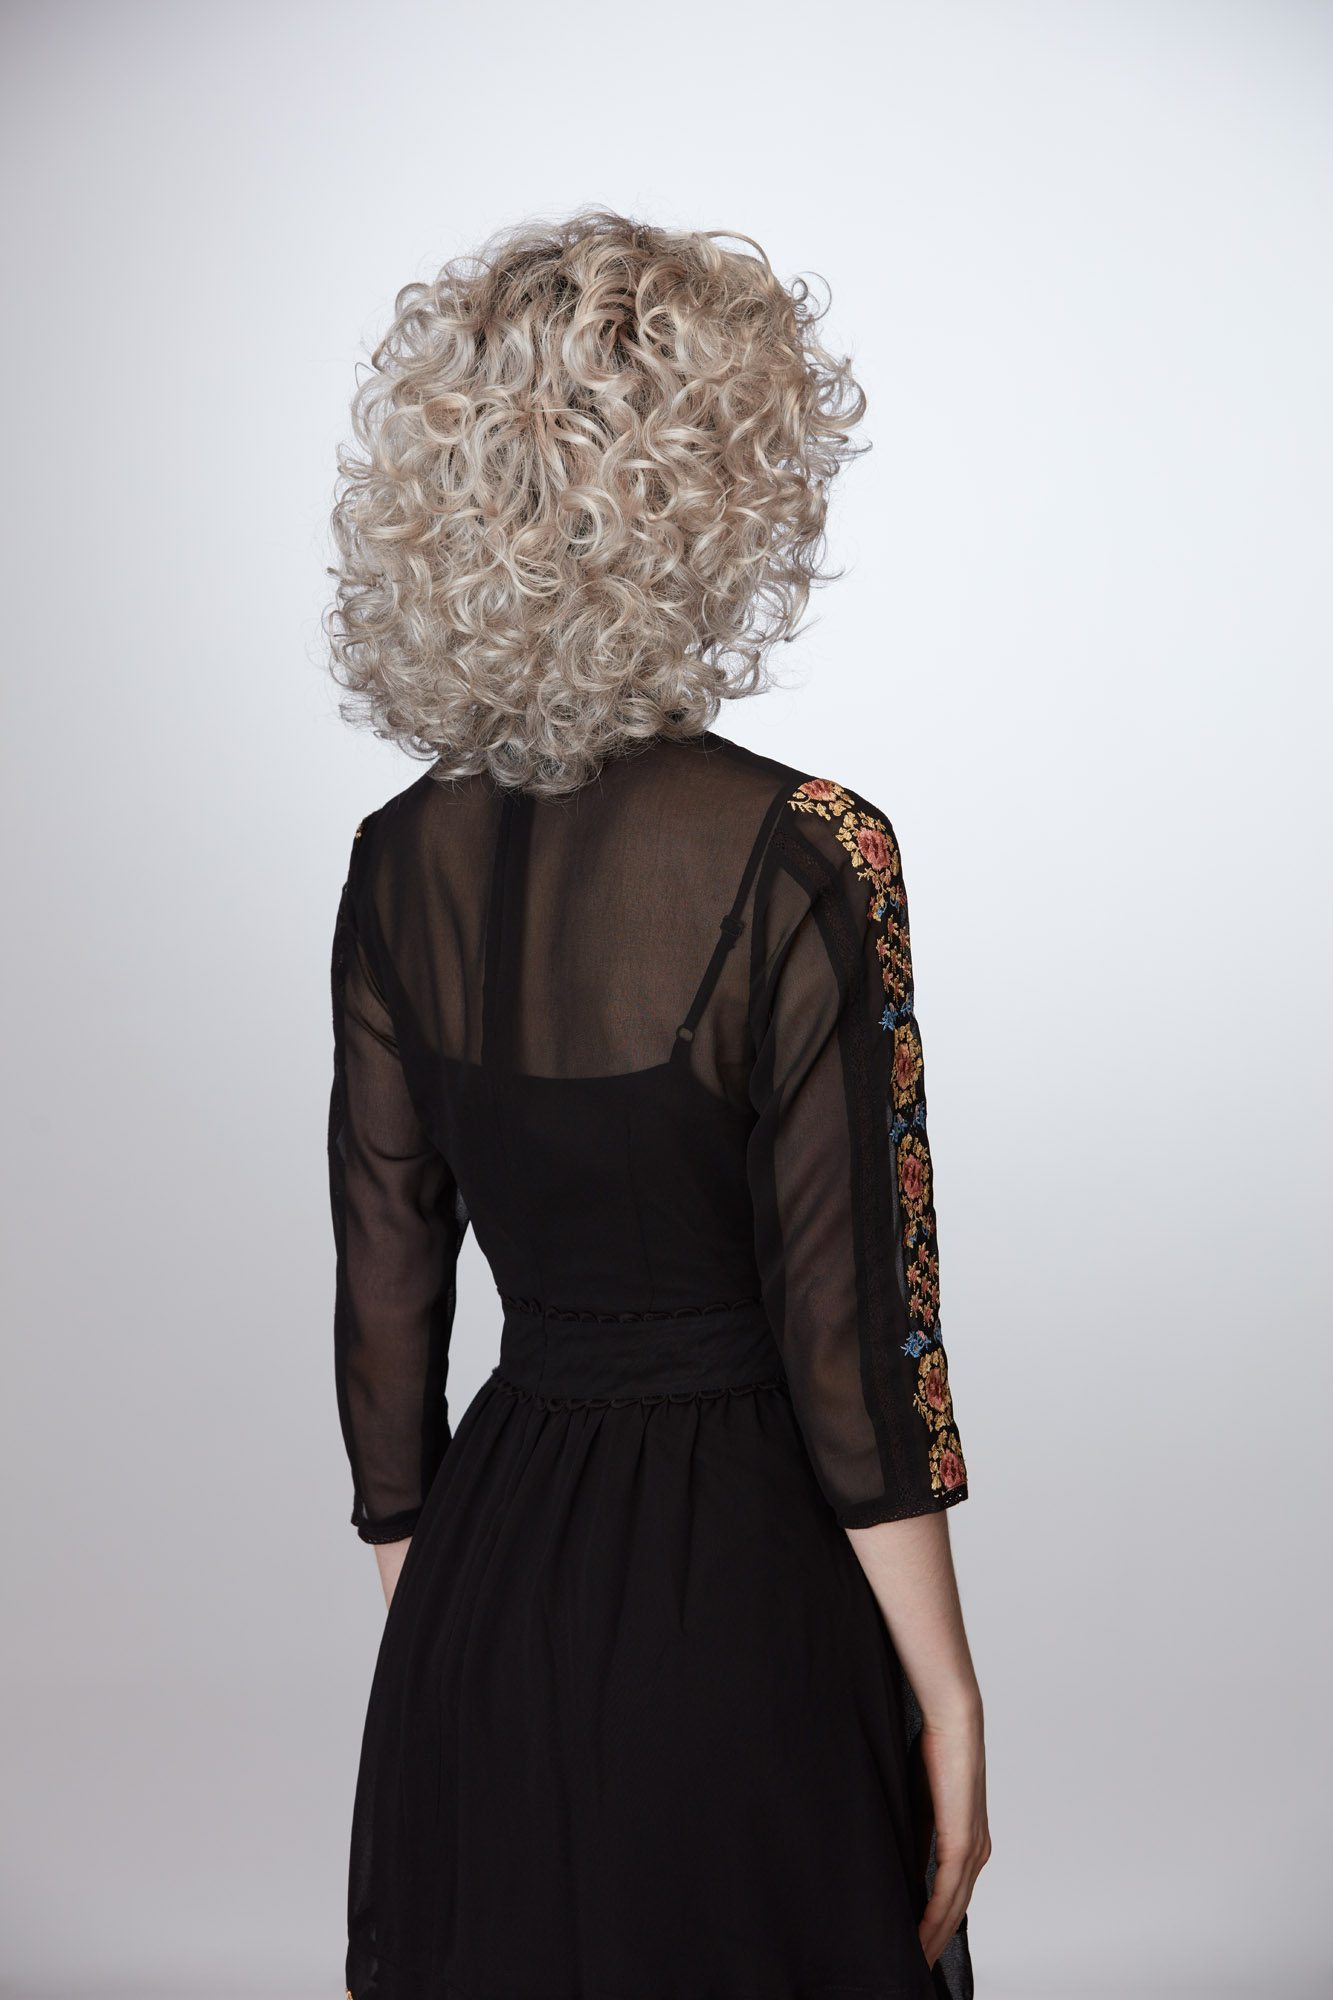 Compelling Wig Natural Image - image Compelling_G602_322 on https://purewigs.com